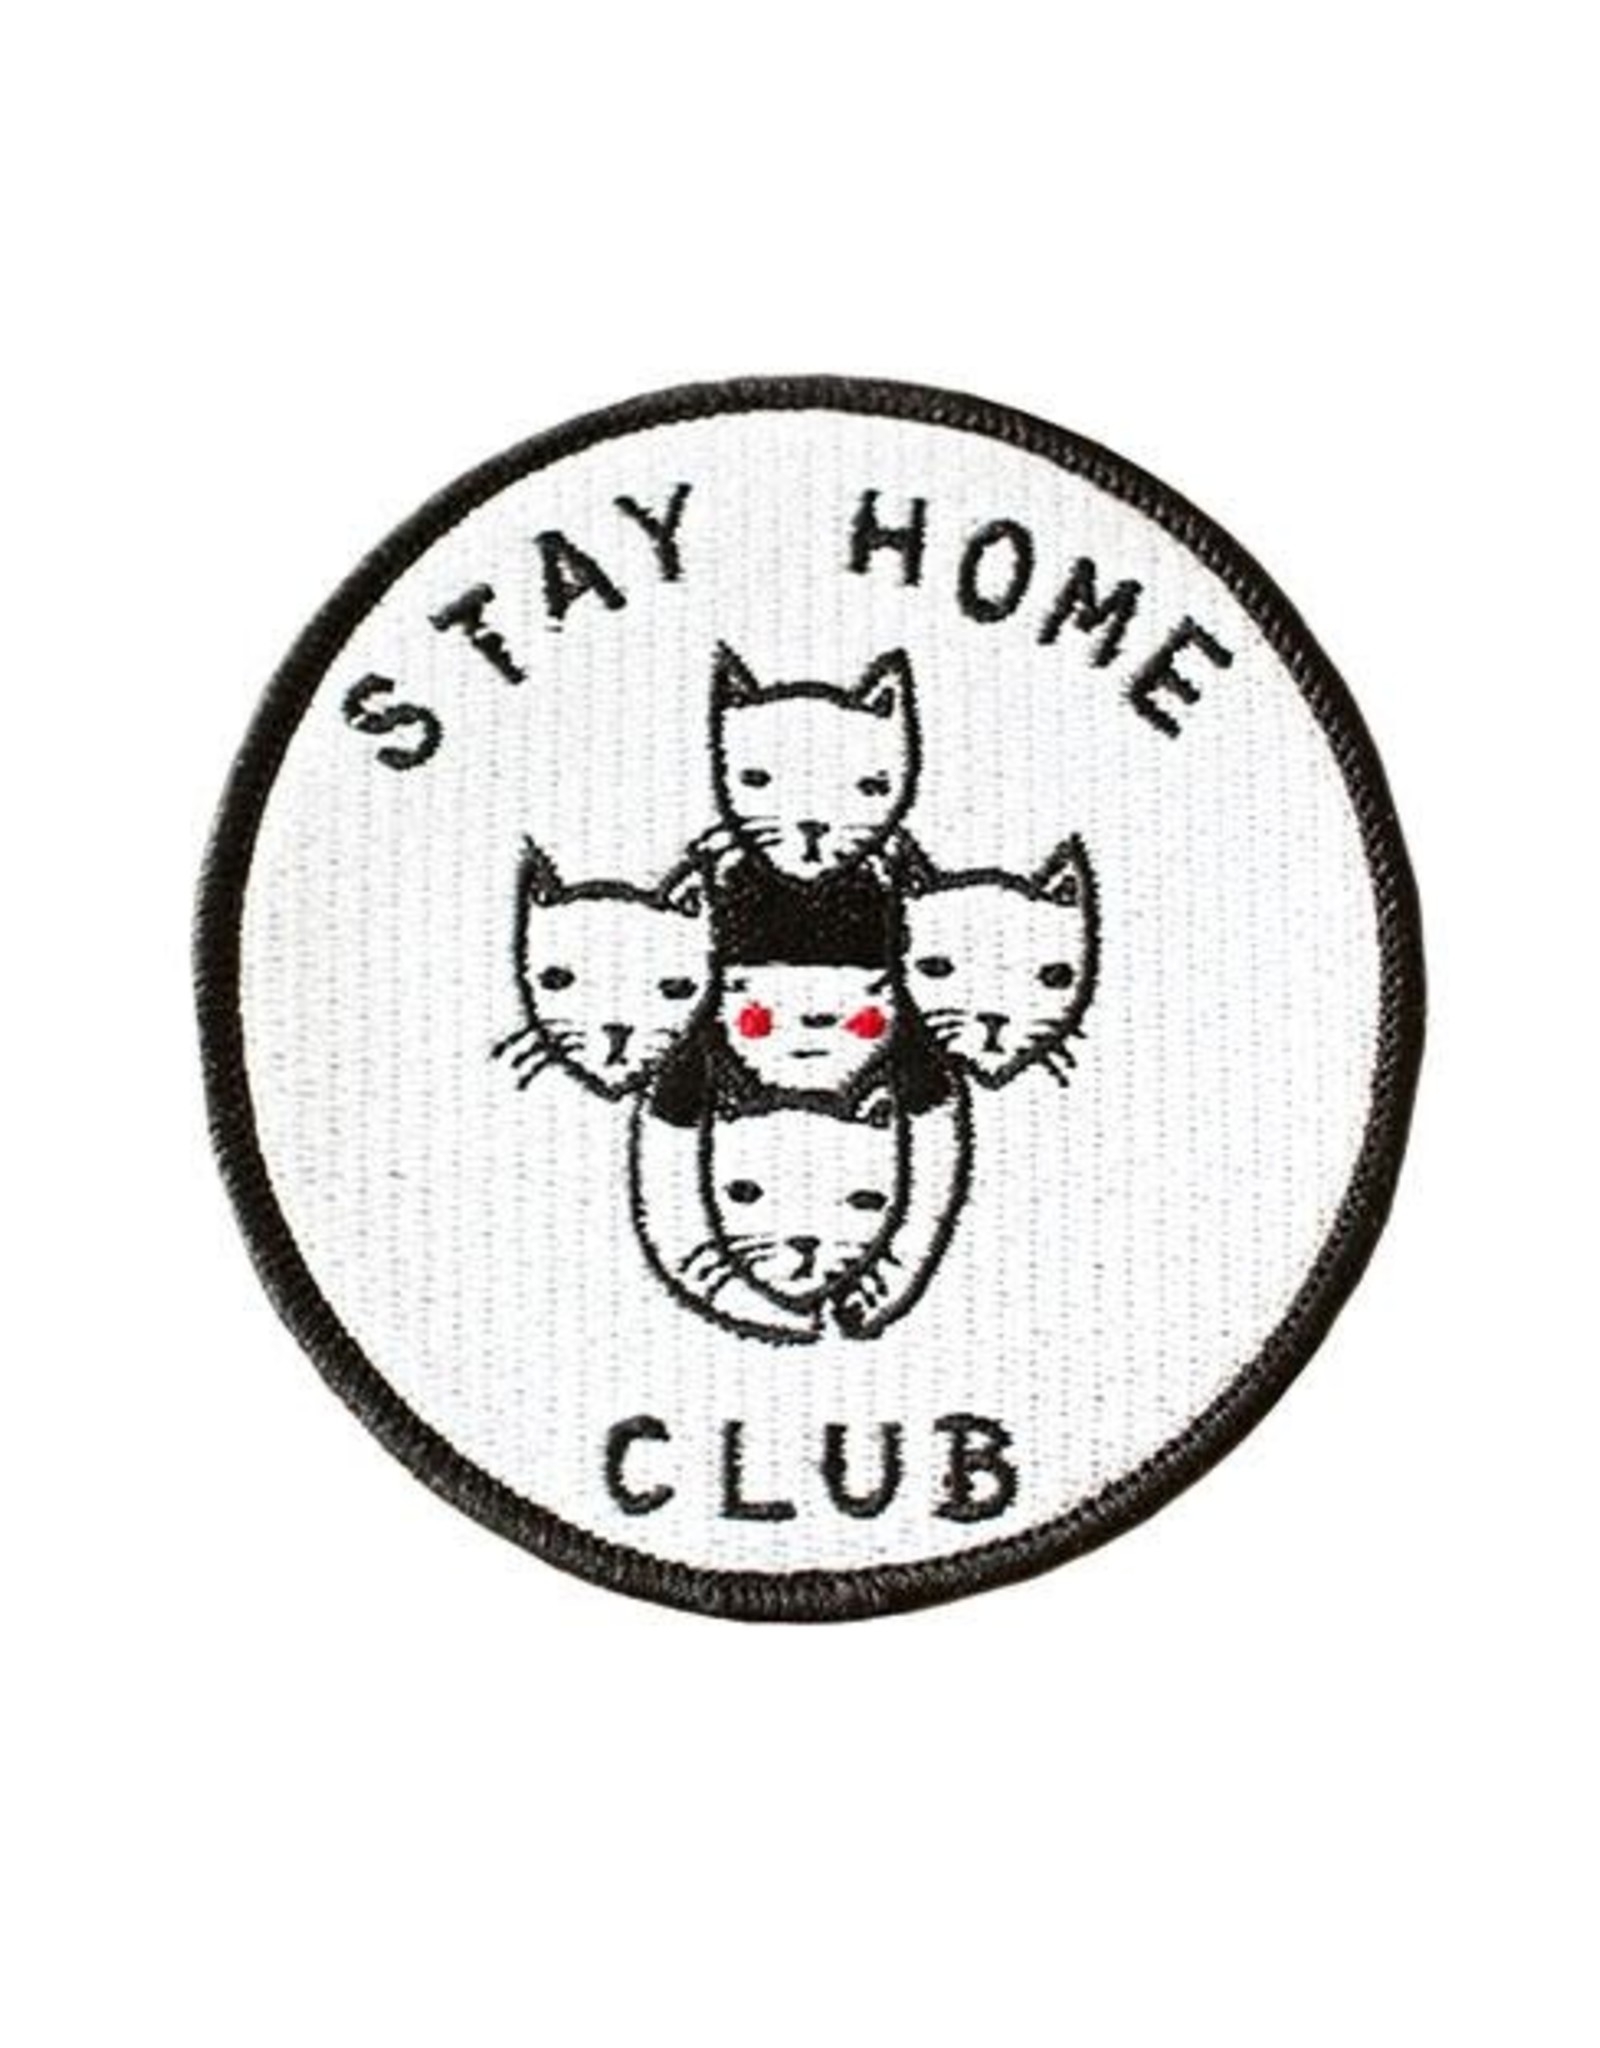 "Stay Home Club ""Stay Home Club"" Iron-On Patch by Stay Home Club"